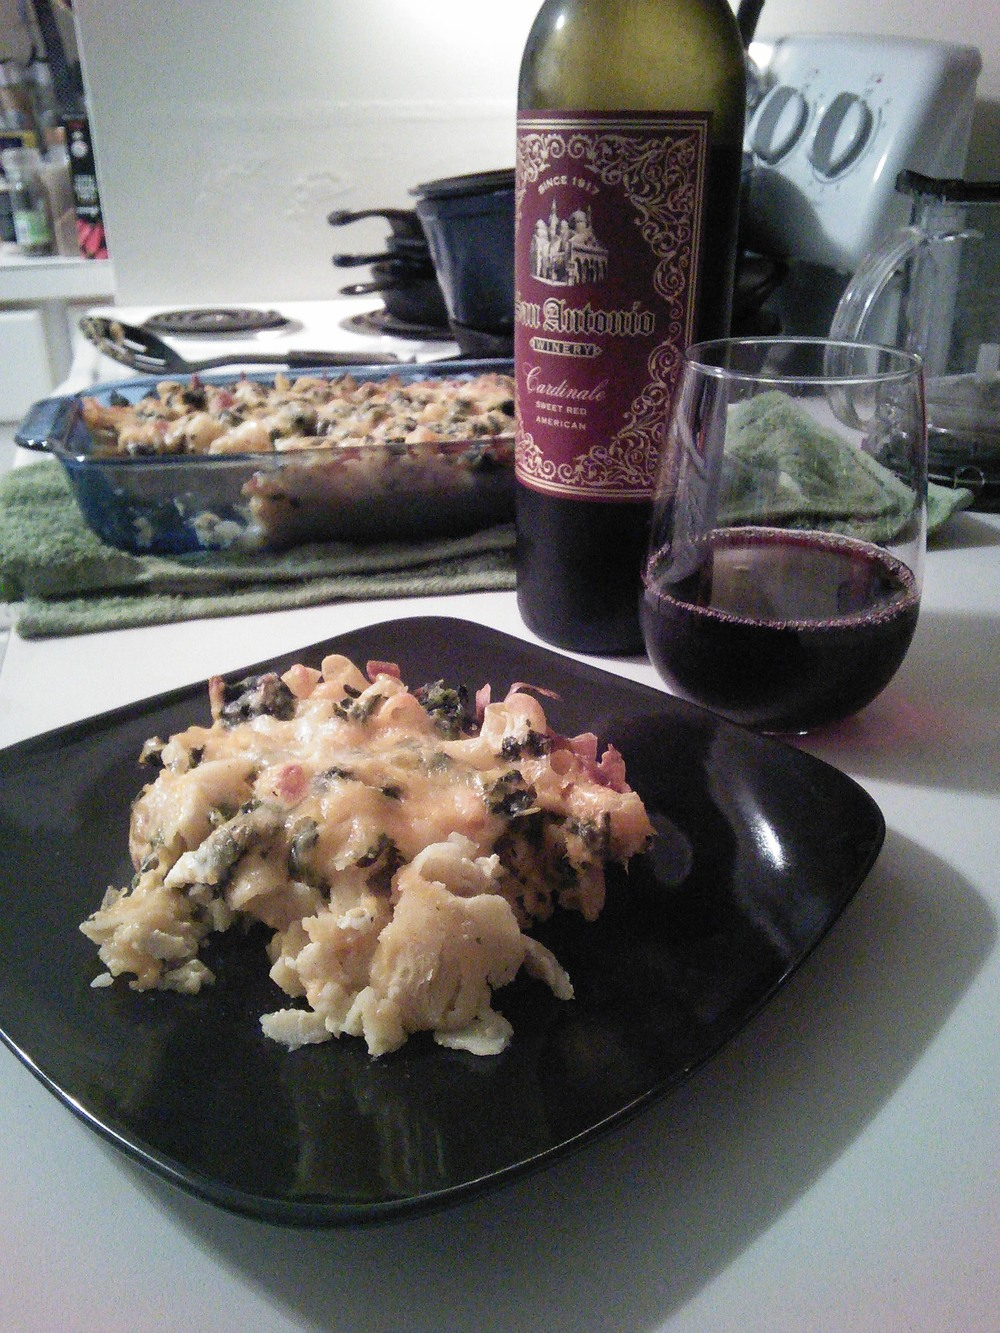 Enjoyed this dish along with my FAVORITE sweet red wine:)